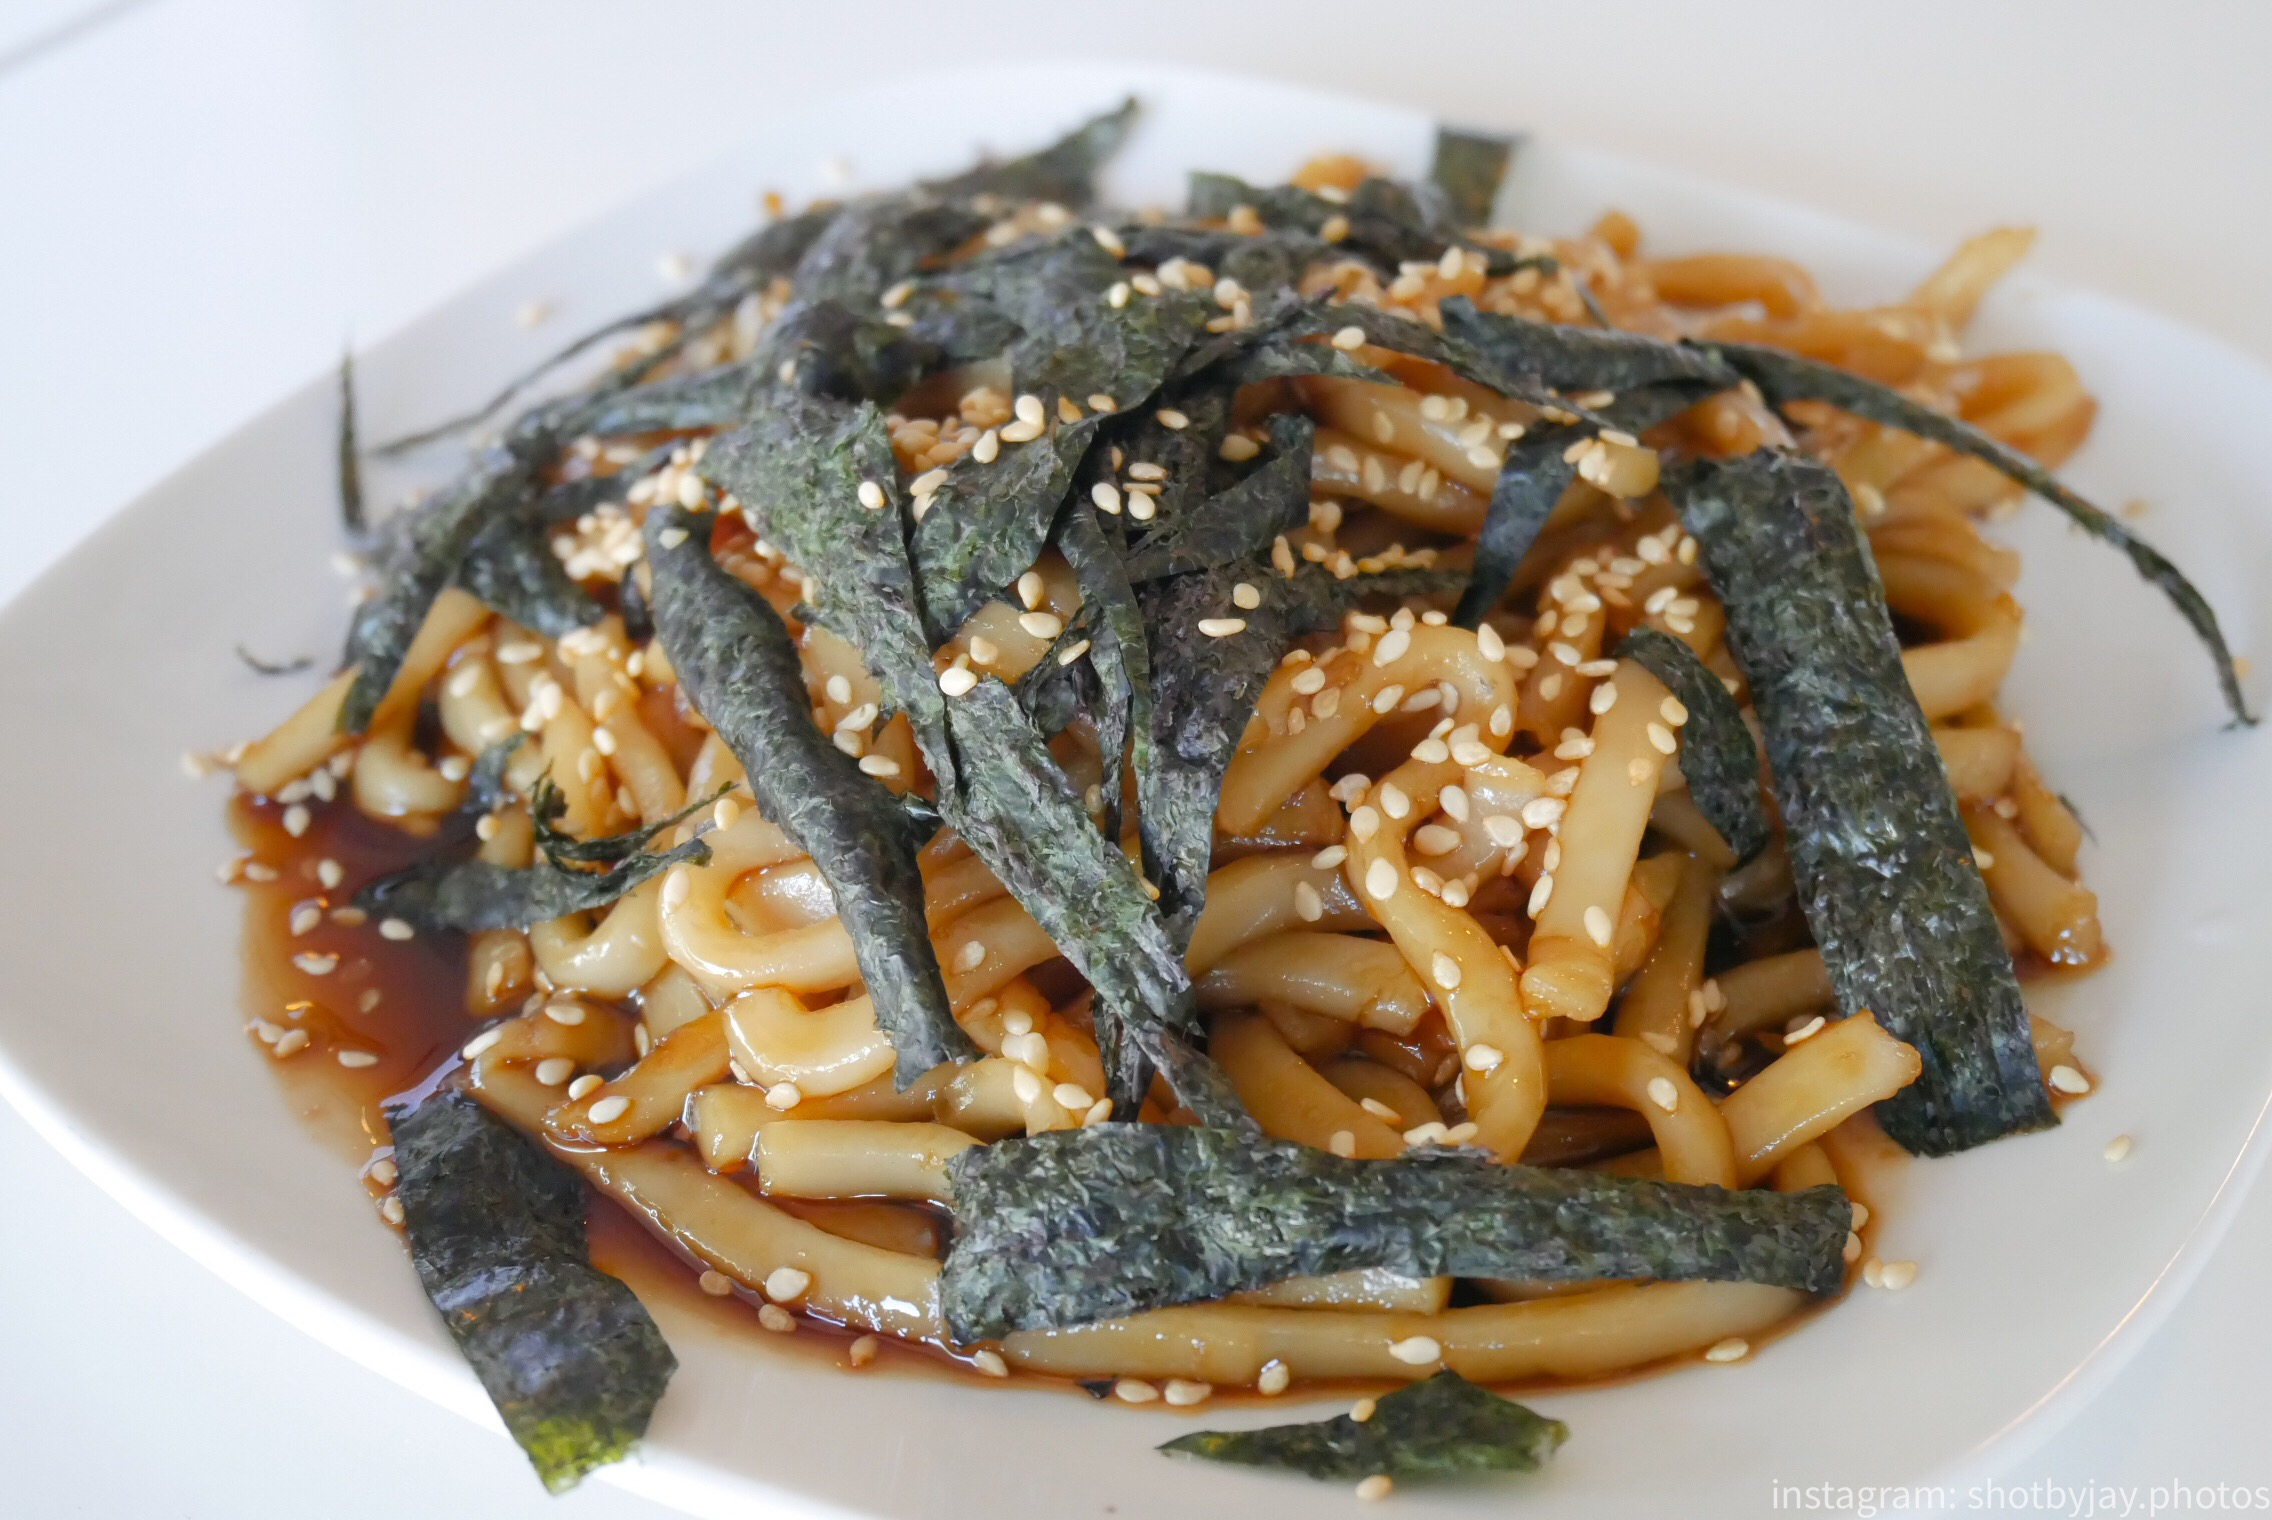 Sesame Udon Noodles with Seaweed